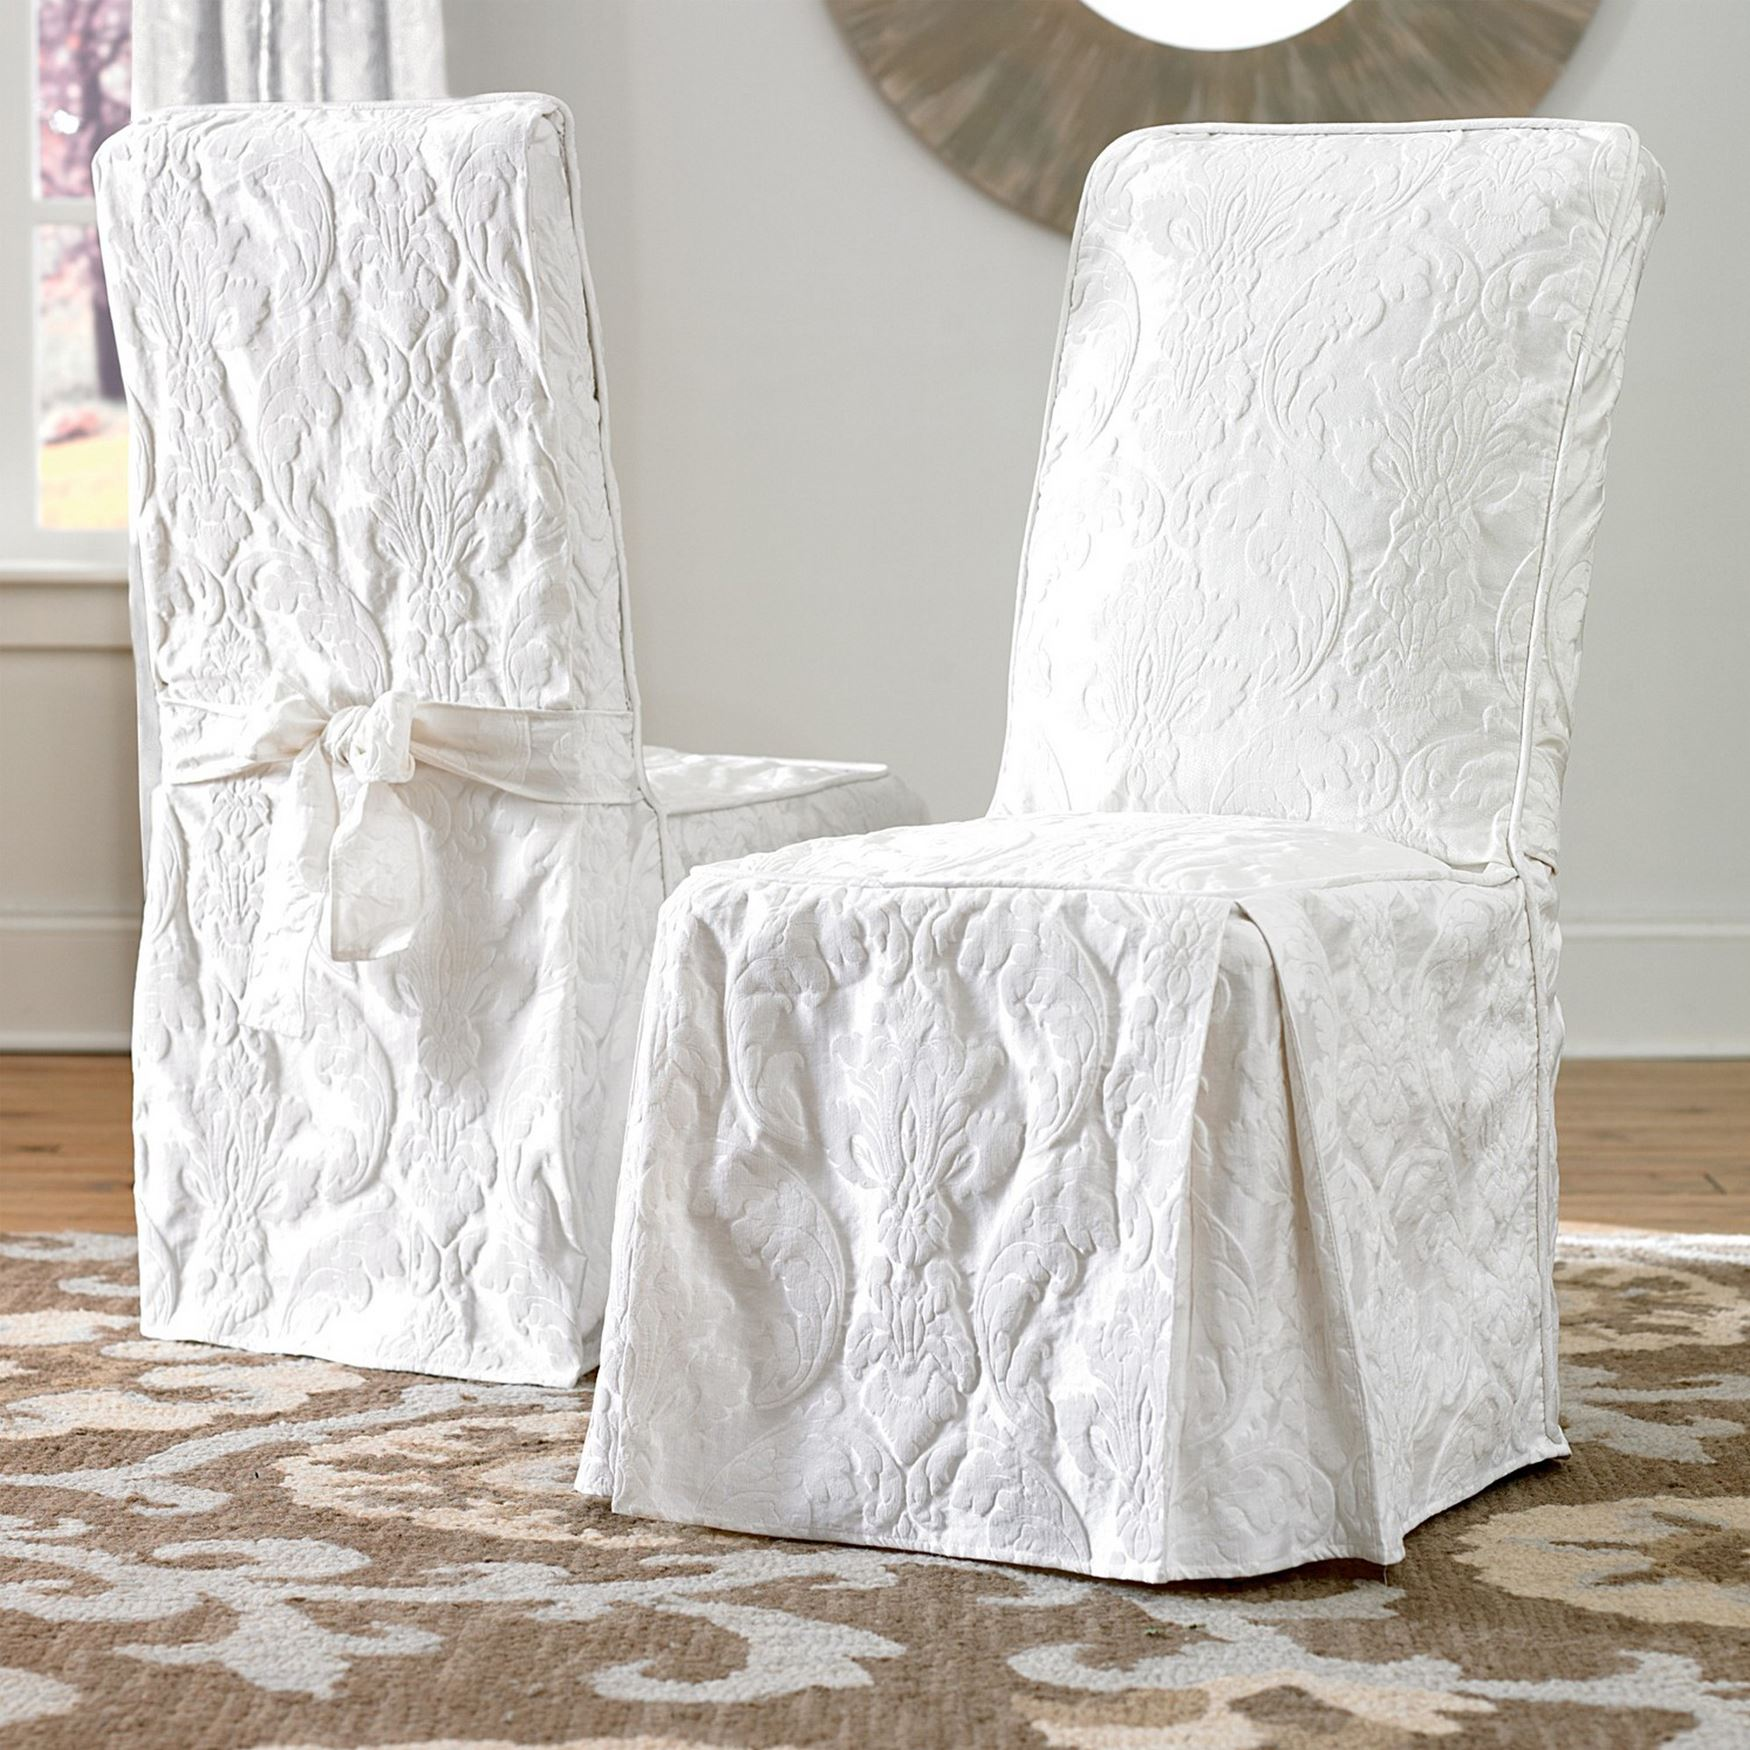 Cover Dining Room Chairs: Matelasse Long Dining Room Chair Cover